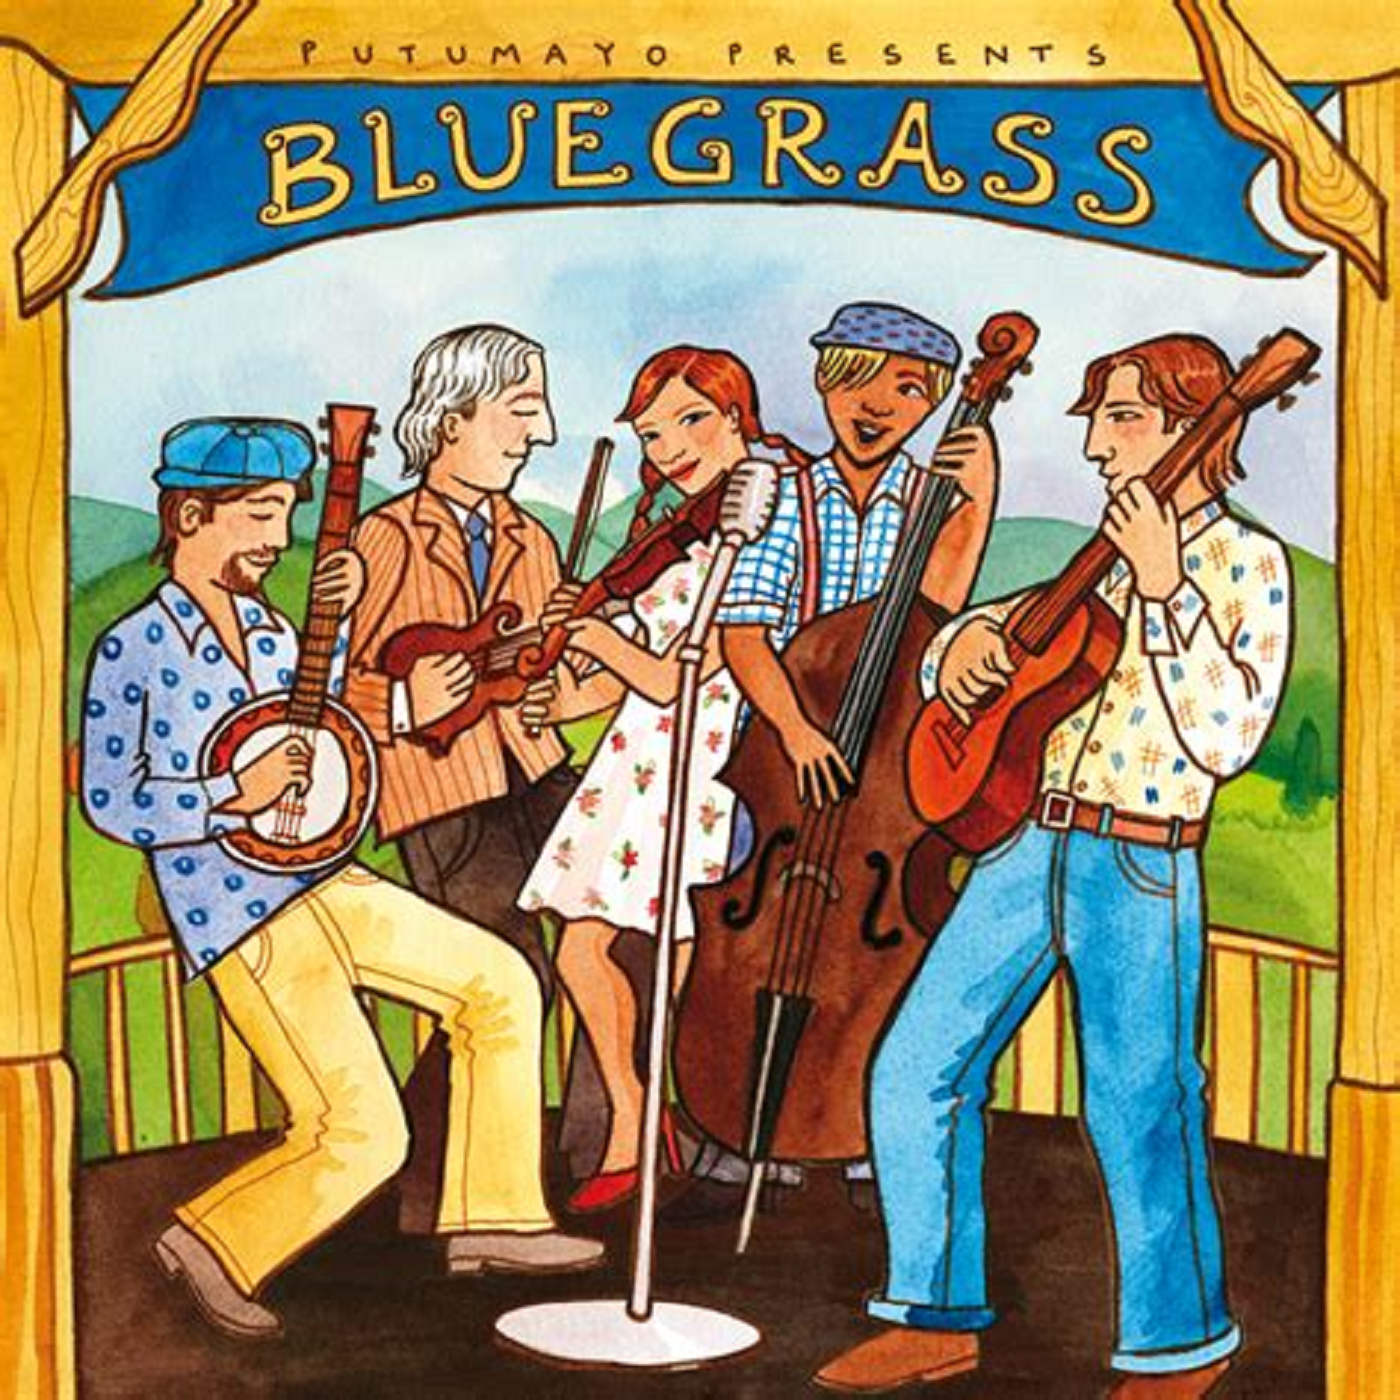 Best of Bluegrass with Trevor Ruffell